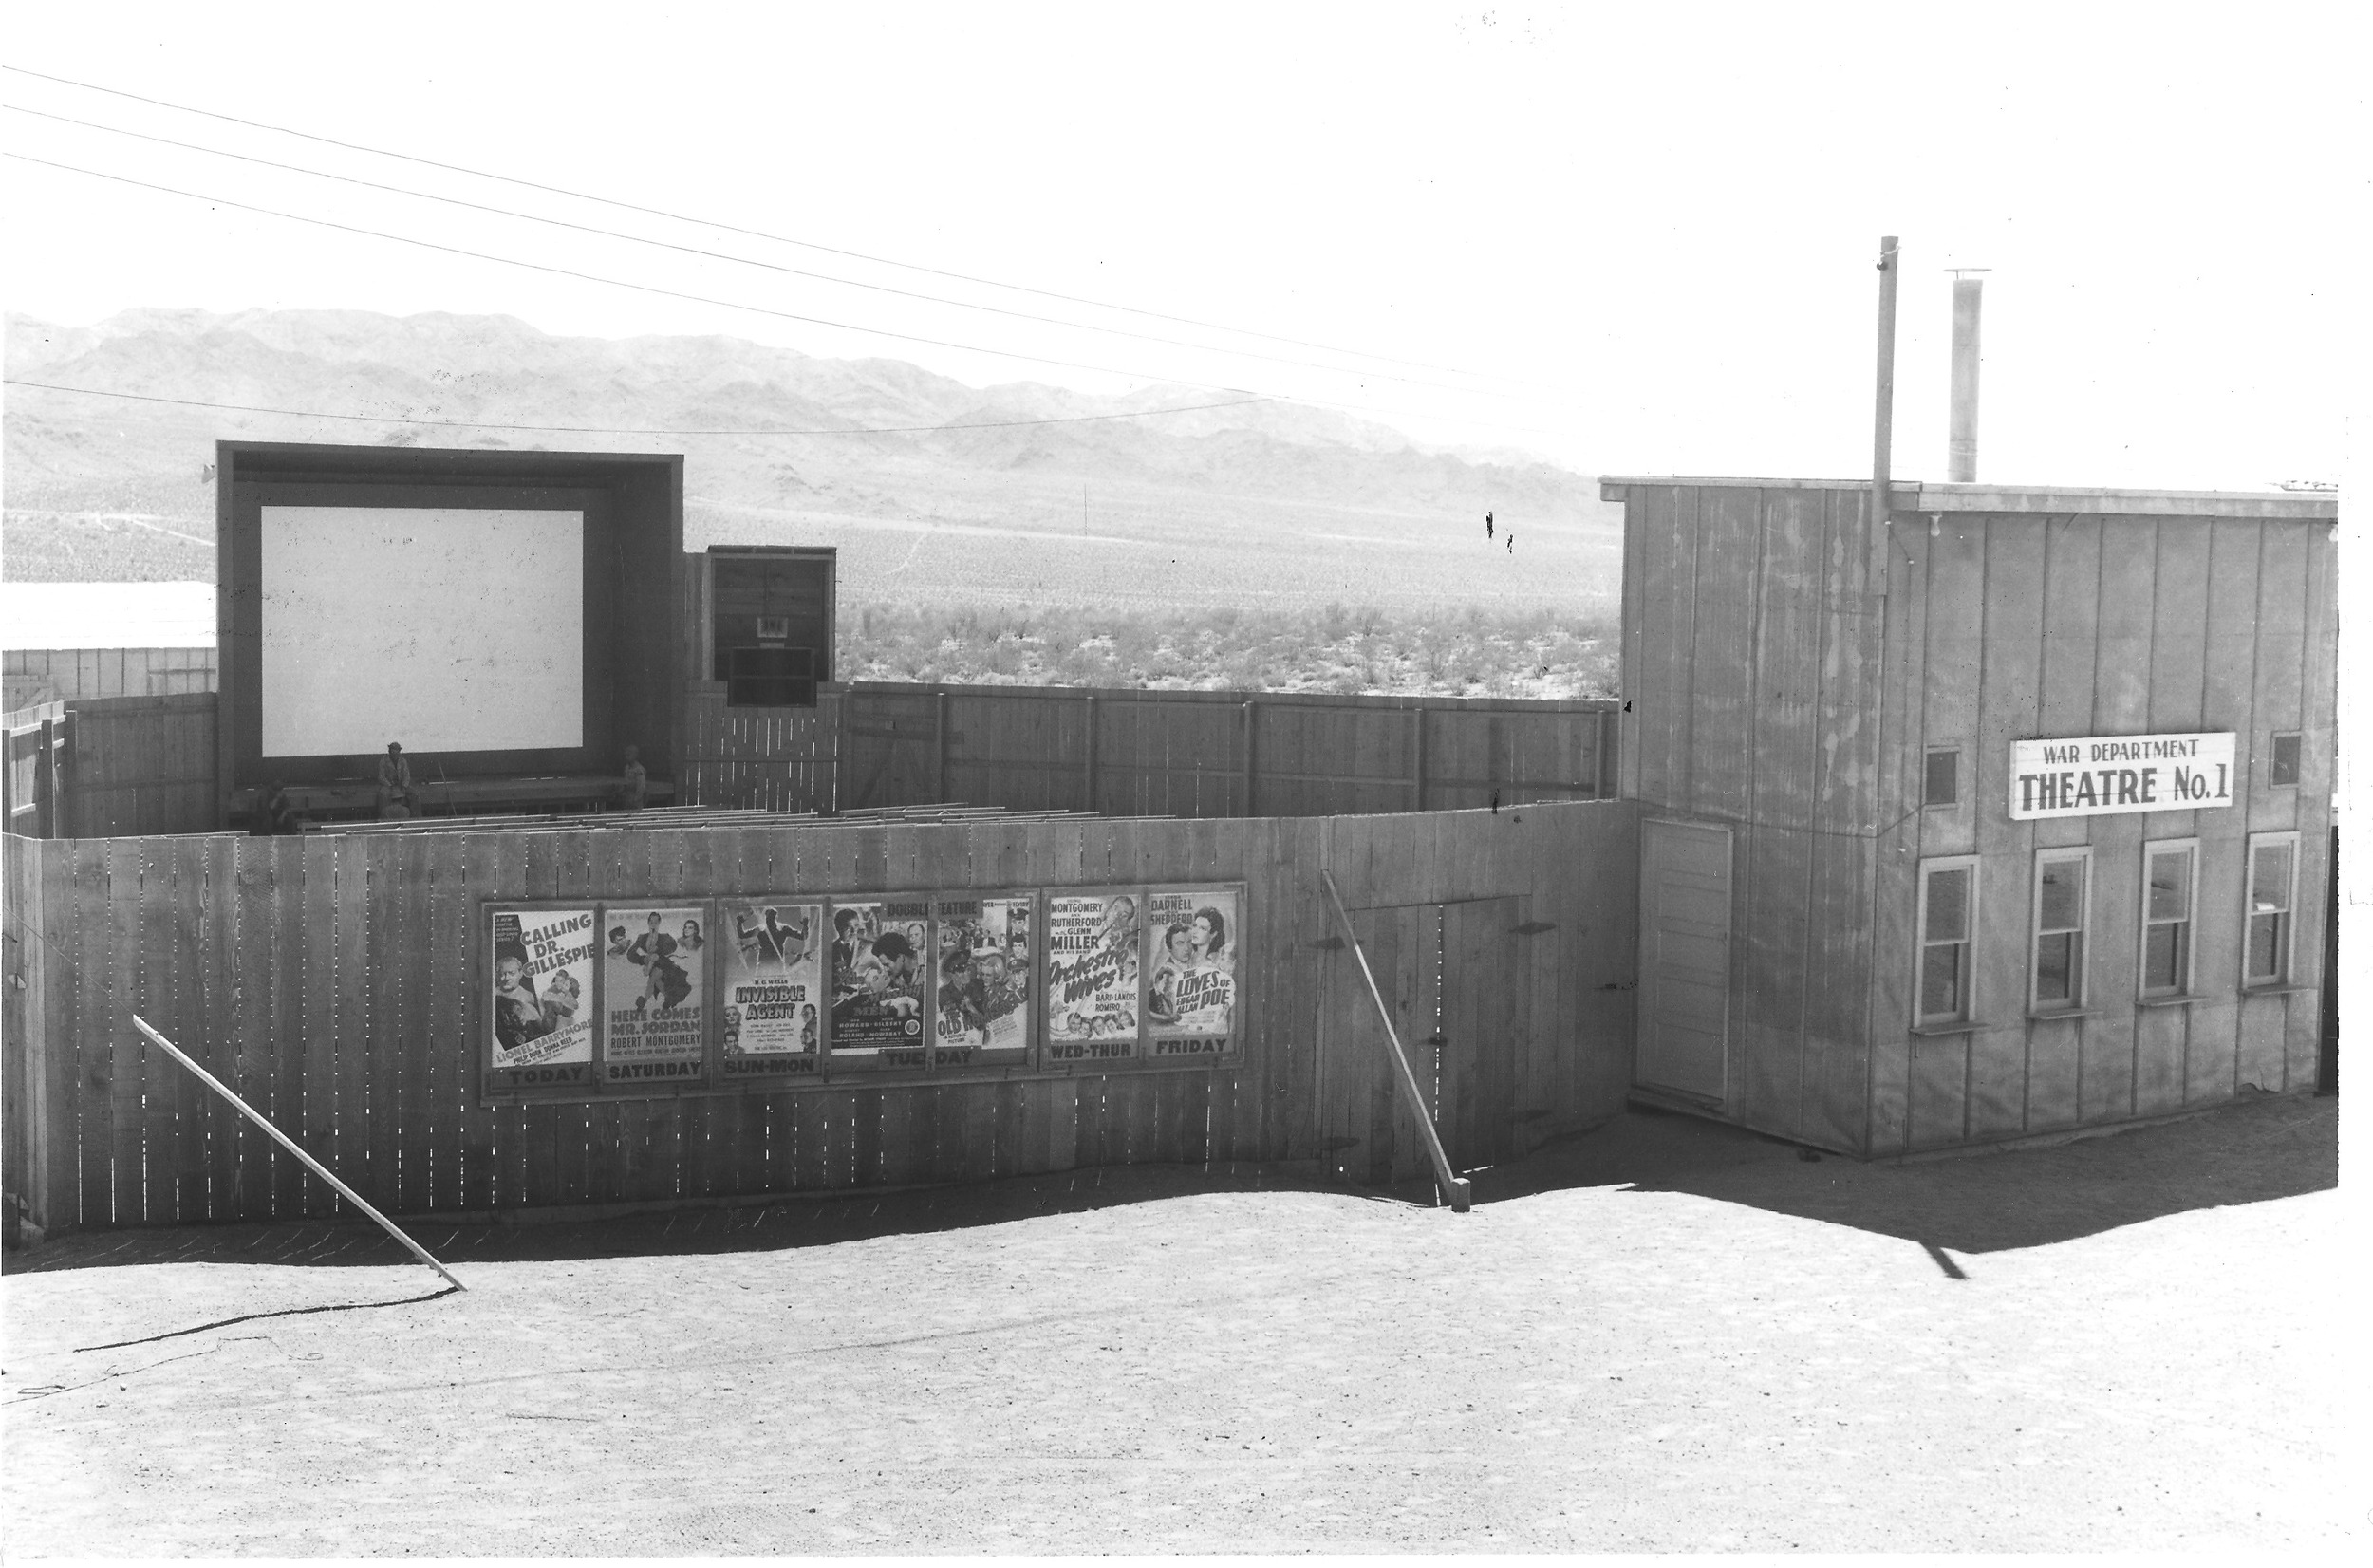 A theater operated inside the Desert Training Center, though many troops saw films in the nearby communities while on leave. Other entertainment options included baseball leagues, USO shows, and dances though much of soldiers' free time was spent in the field, playing cards or writing home. U.S. Army photograph, courtesy of the General Patton Memorial Museum.